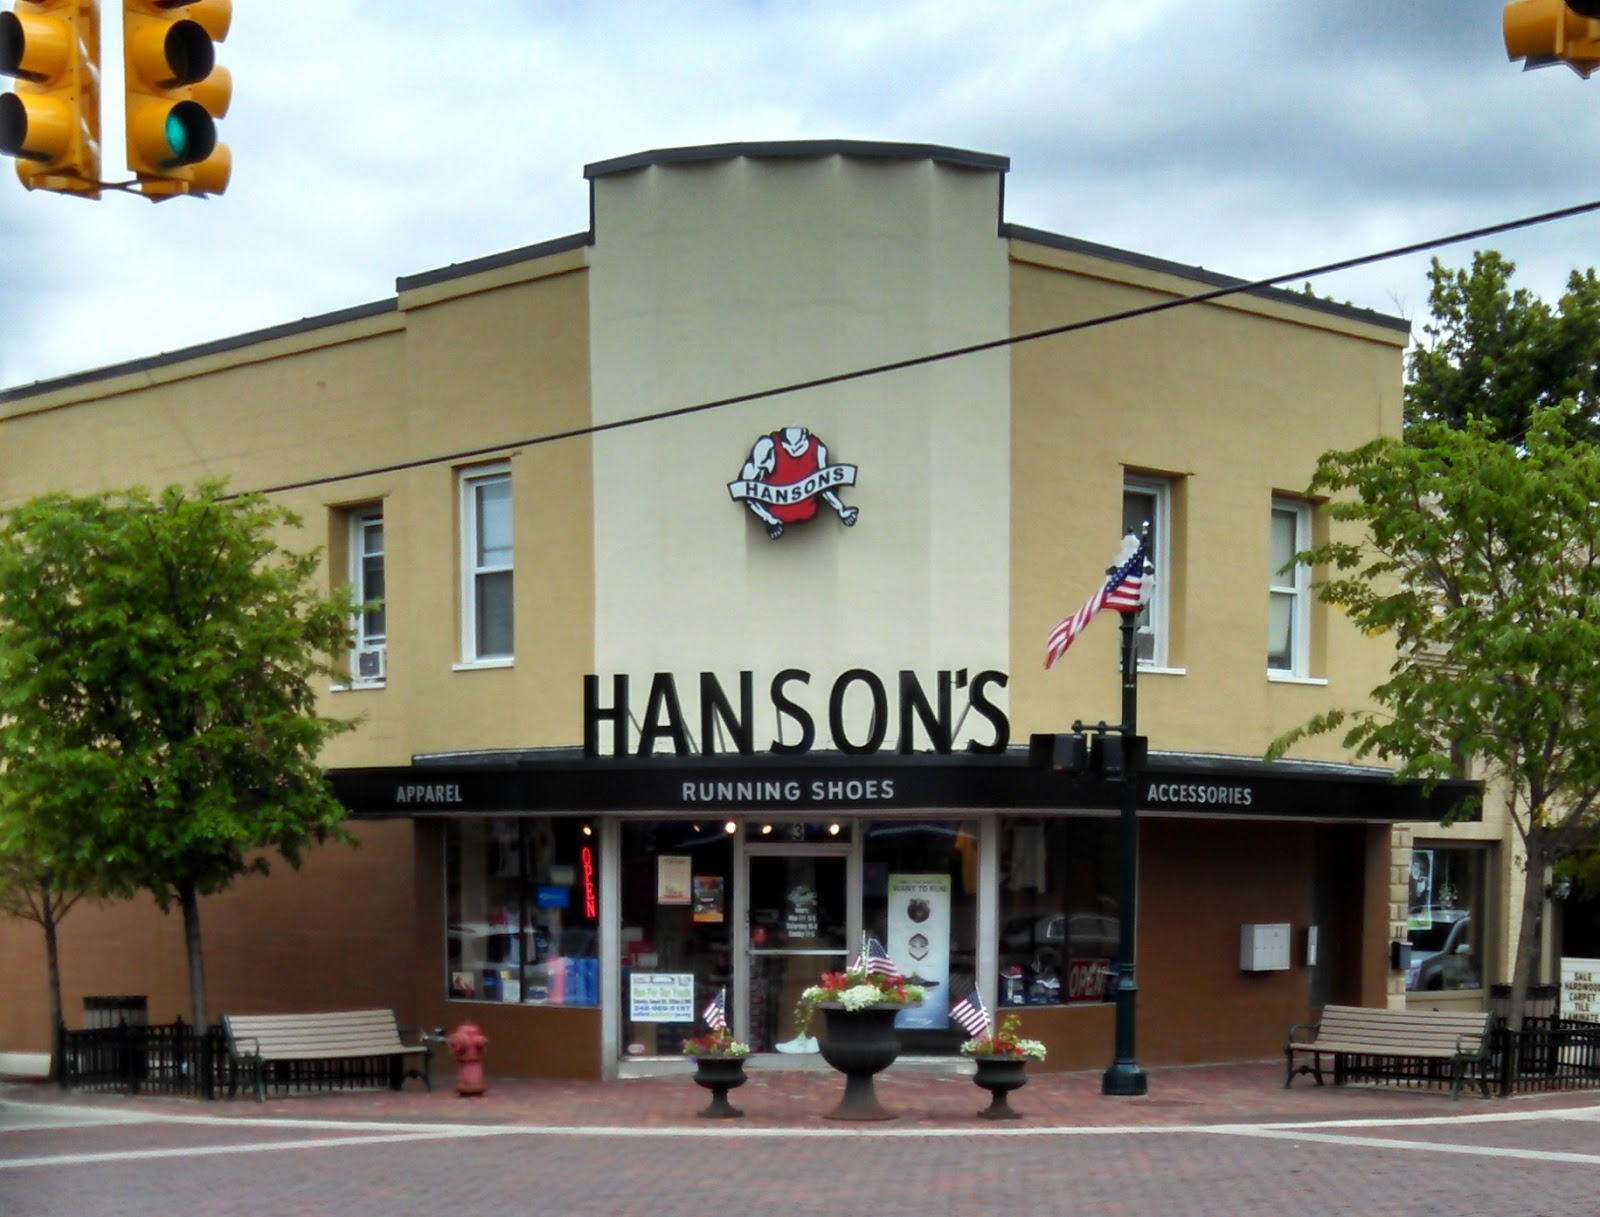 Find Hansons Running Shop in Lake Orion with Address, Phone number from Yahoo US Local. Includes Hansons Running Shop Reviews, maps & directions to Hansons Running Shop in Lake Orion and more from Yahoo US Local4/5(9).